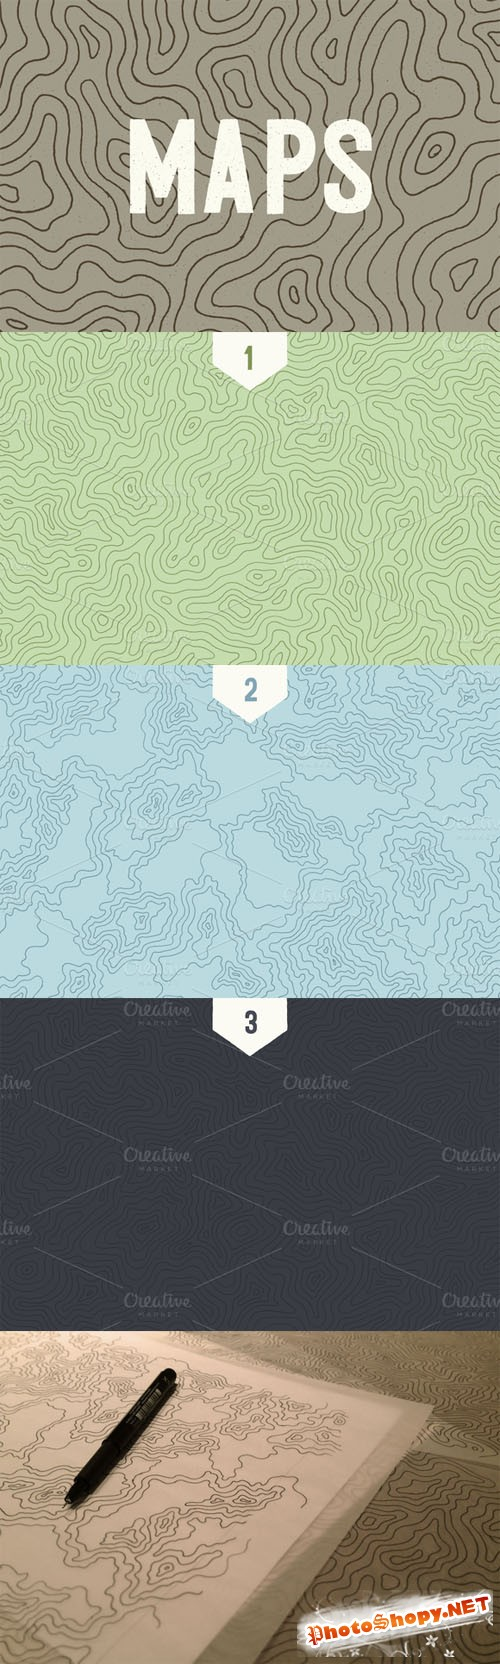 Creativemarket - 3 Topographic Elevation Maps 15833